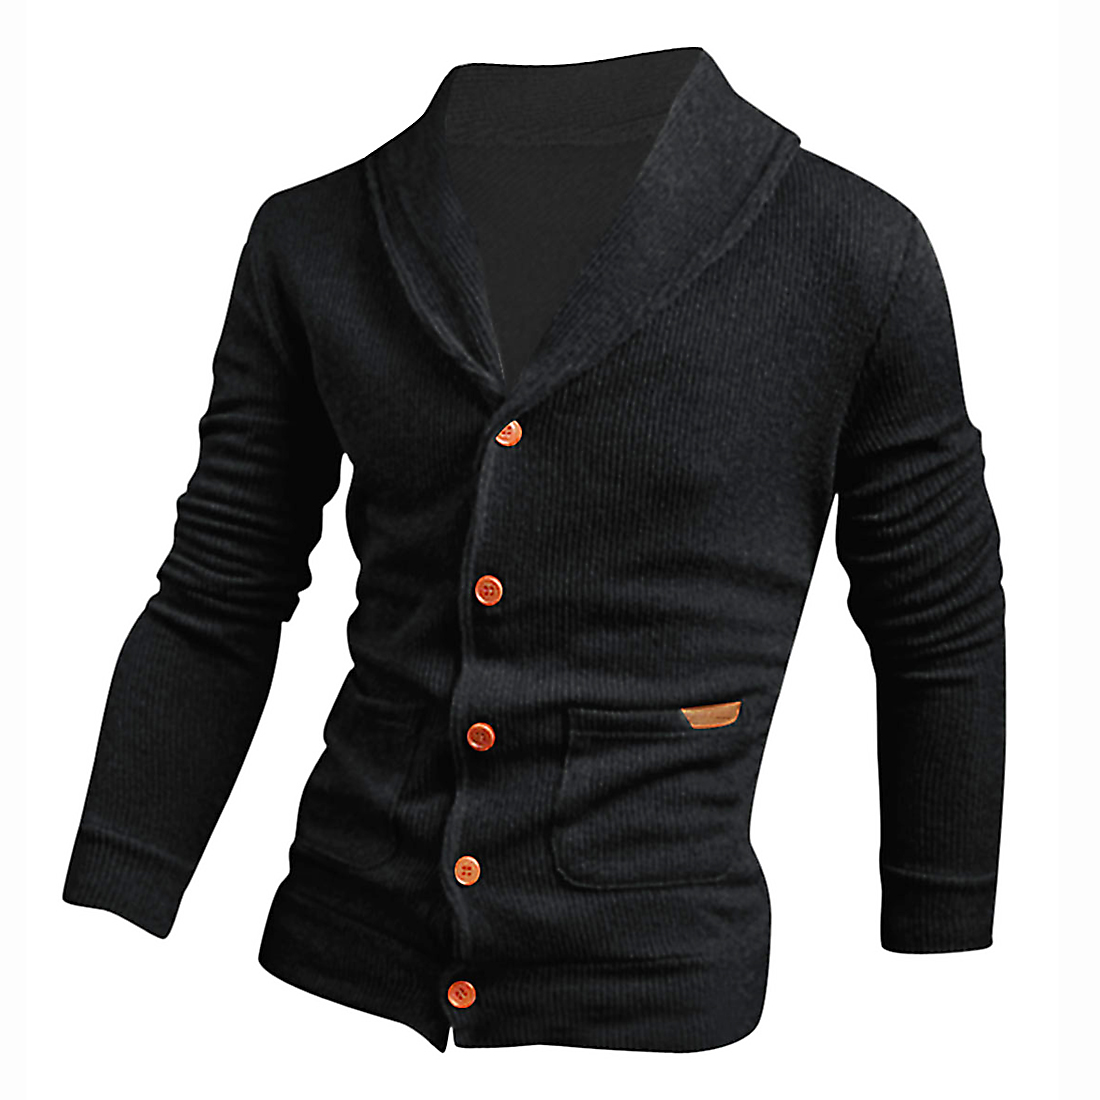 Men New Style Shawl Collar Button Closure Leisure Cardigan Black M